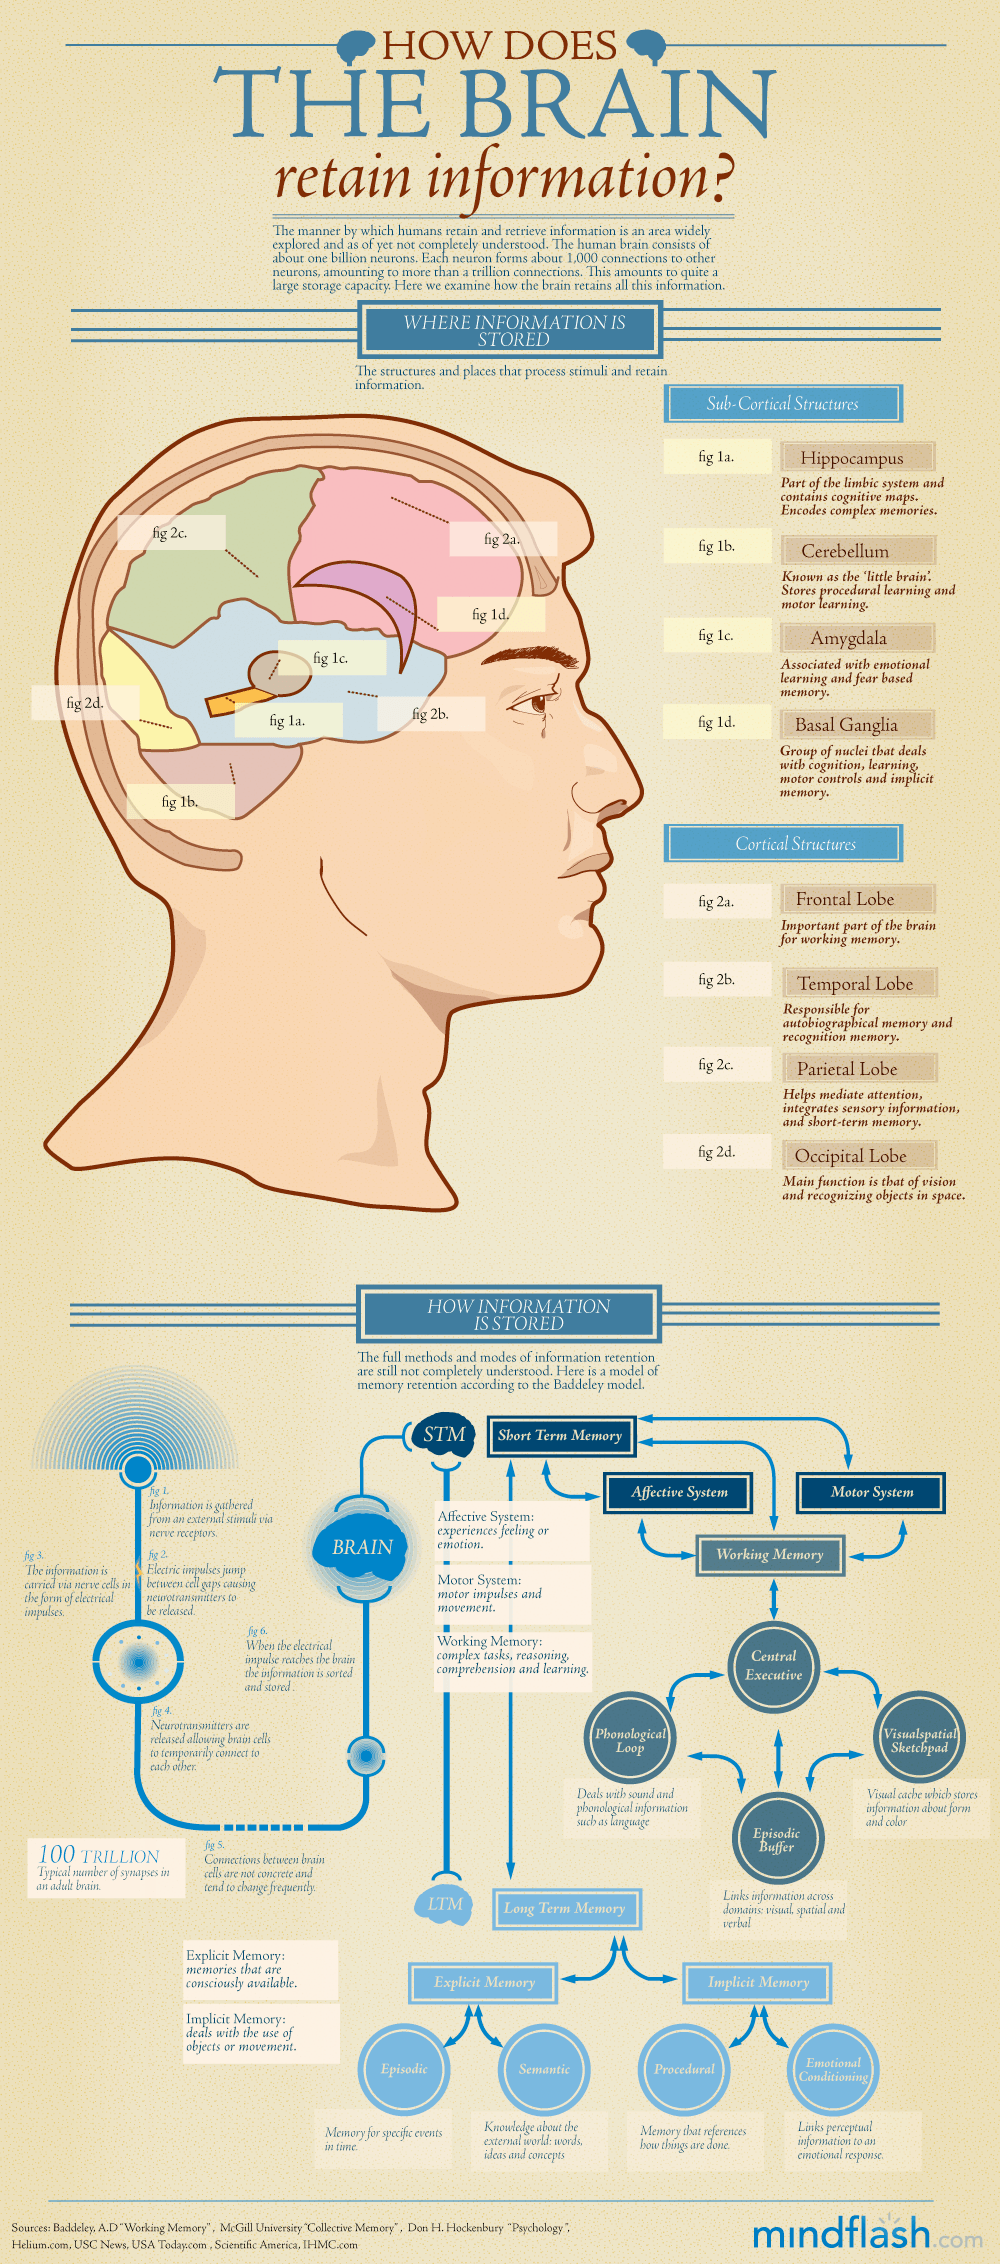 How Does the Brain Retain Information Infographic